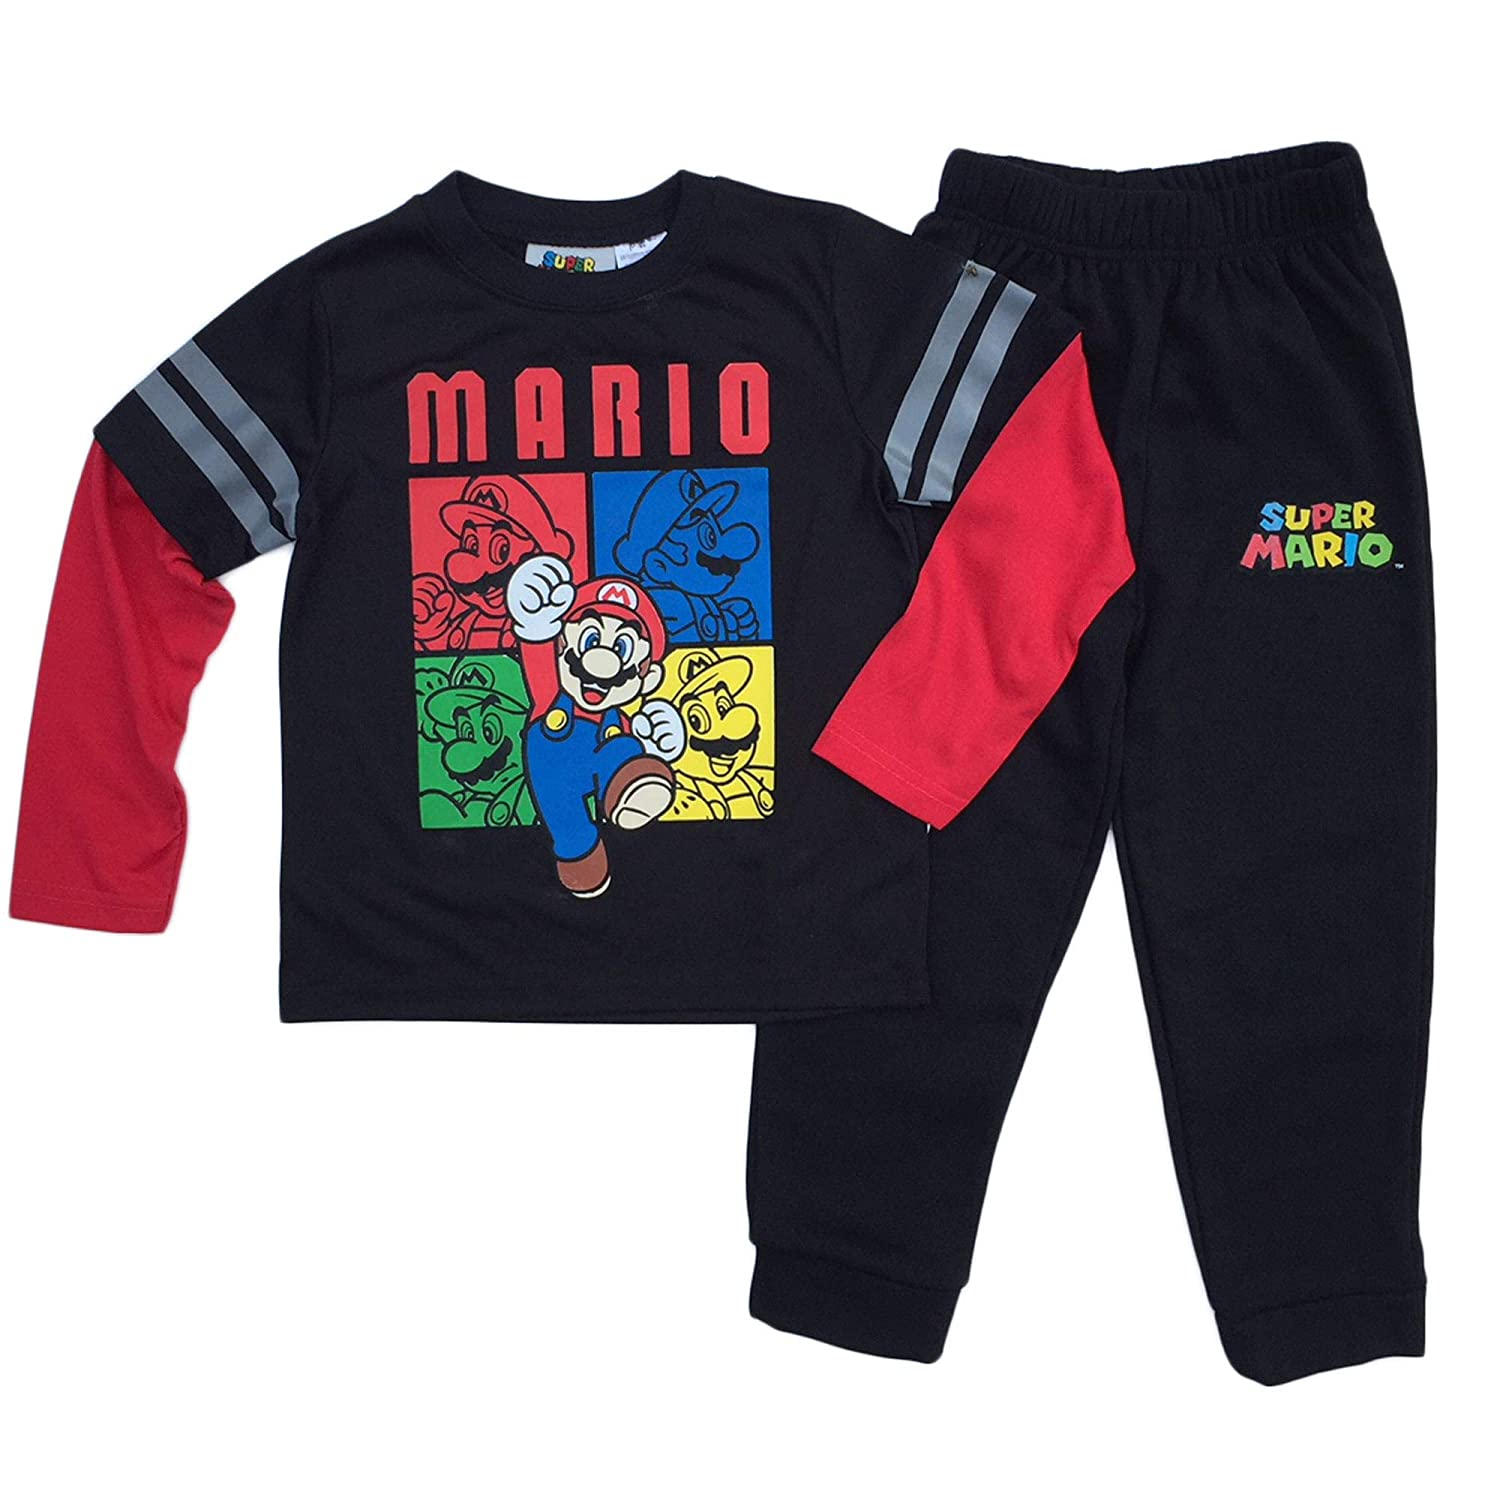 Super Mario Little Boys Fleece Pant and Tee Set